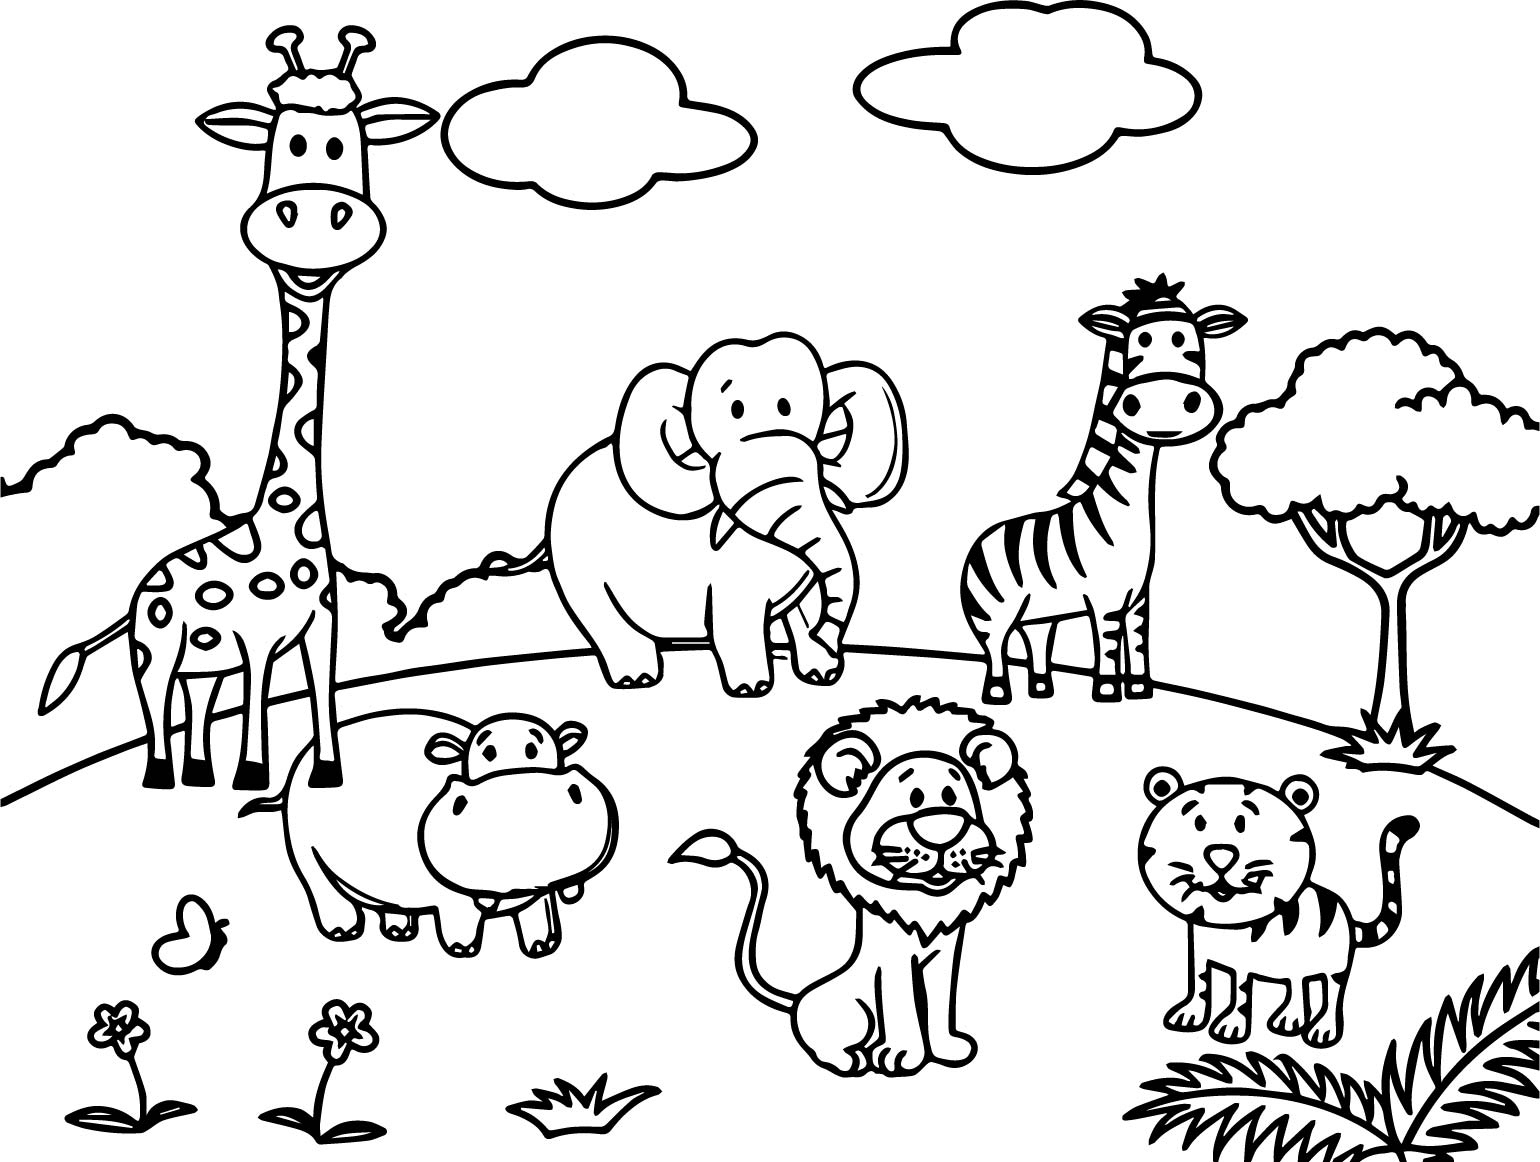 zoo animals coloring pictures how to color zoo coloring sheet pa gco zoo animal zoo animals pictures coloring